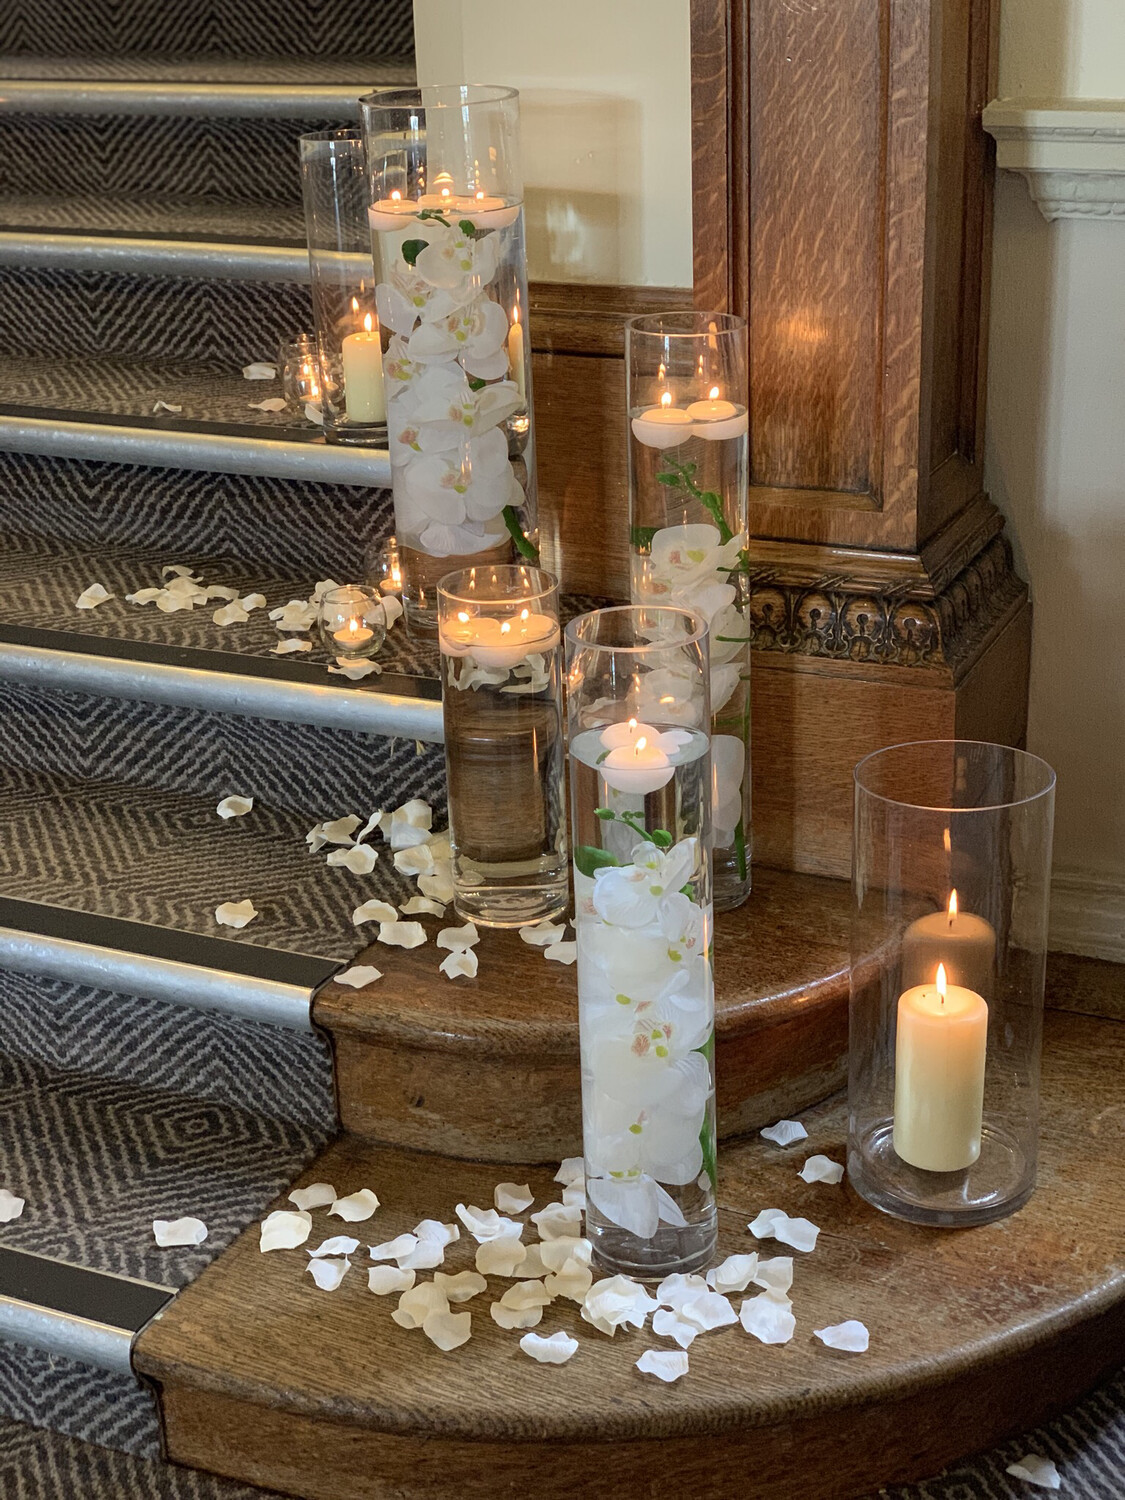 Aisle/ Staircase Floor Decor